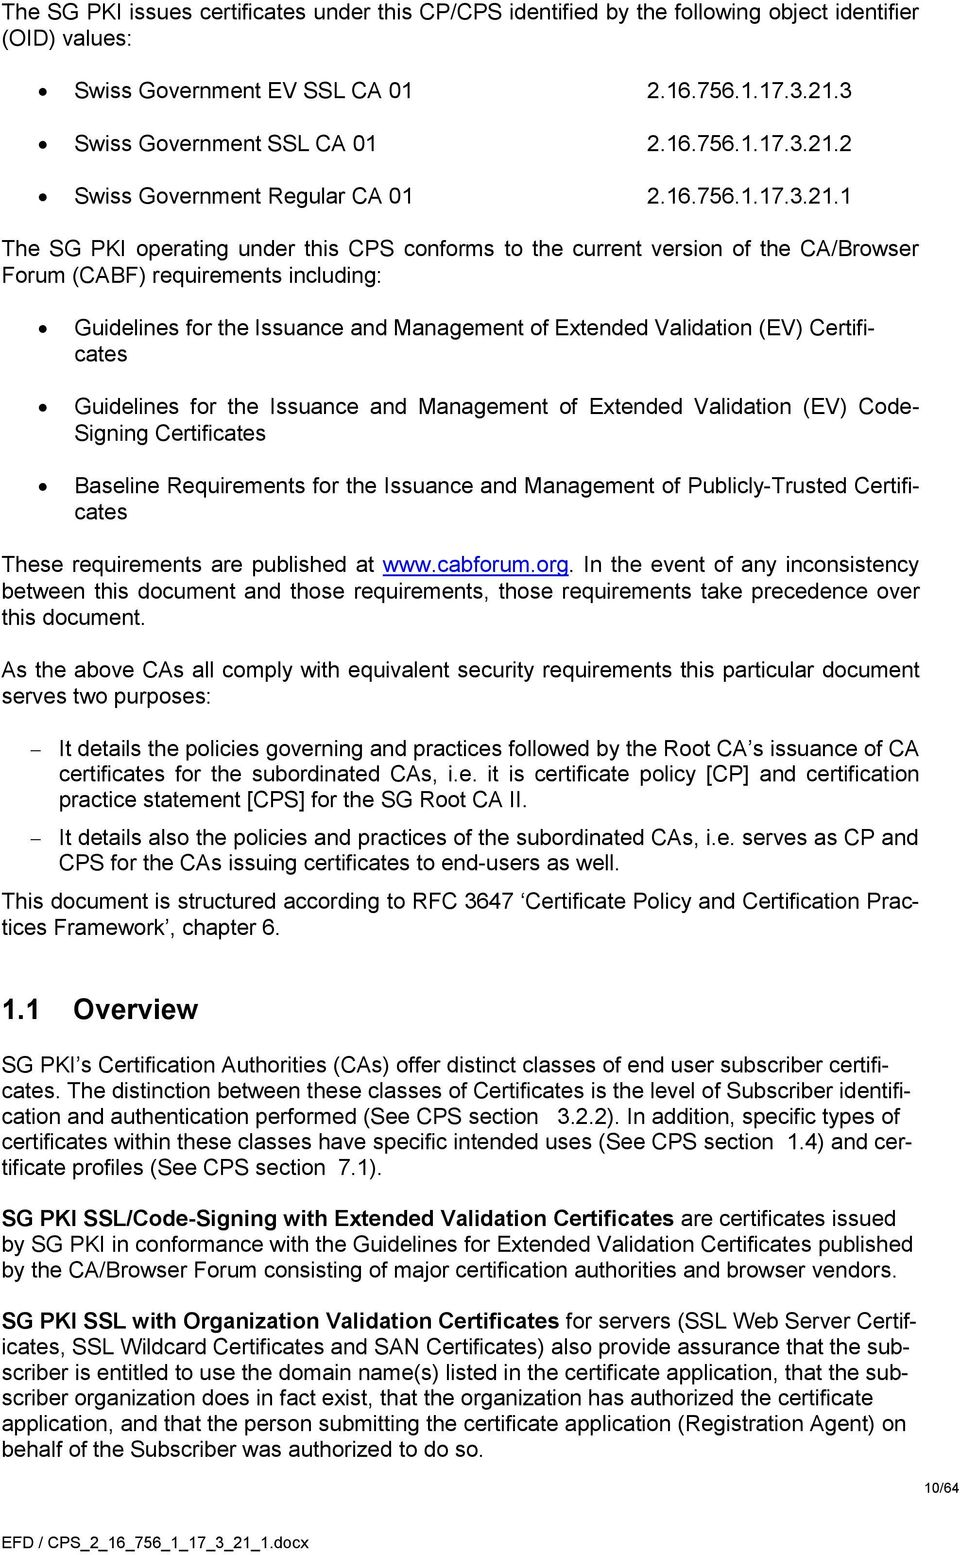 1 The SG PKI operating under this CPS conforms to the current version of the CA/Browser Forum (CABF) requirements including: Guidelines for the Issuance and Management of Extended Validation (EV)